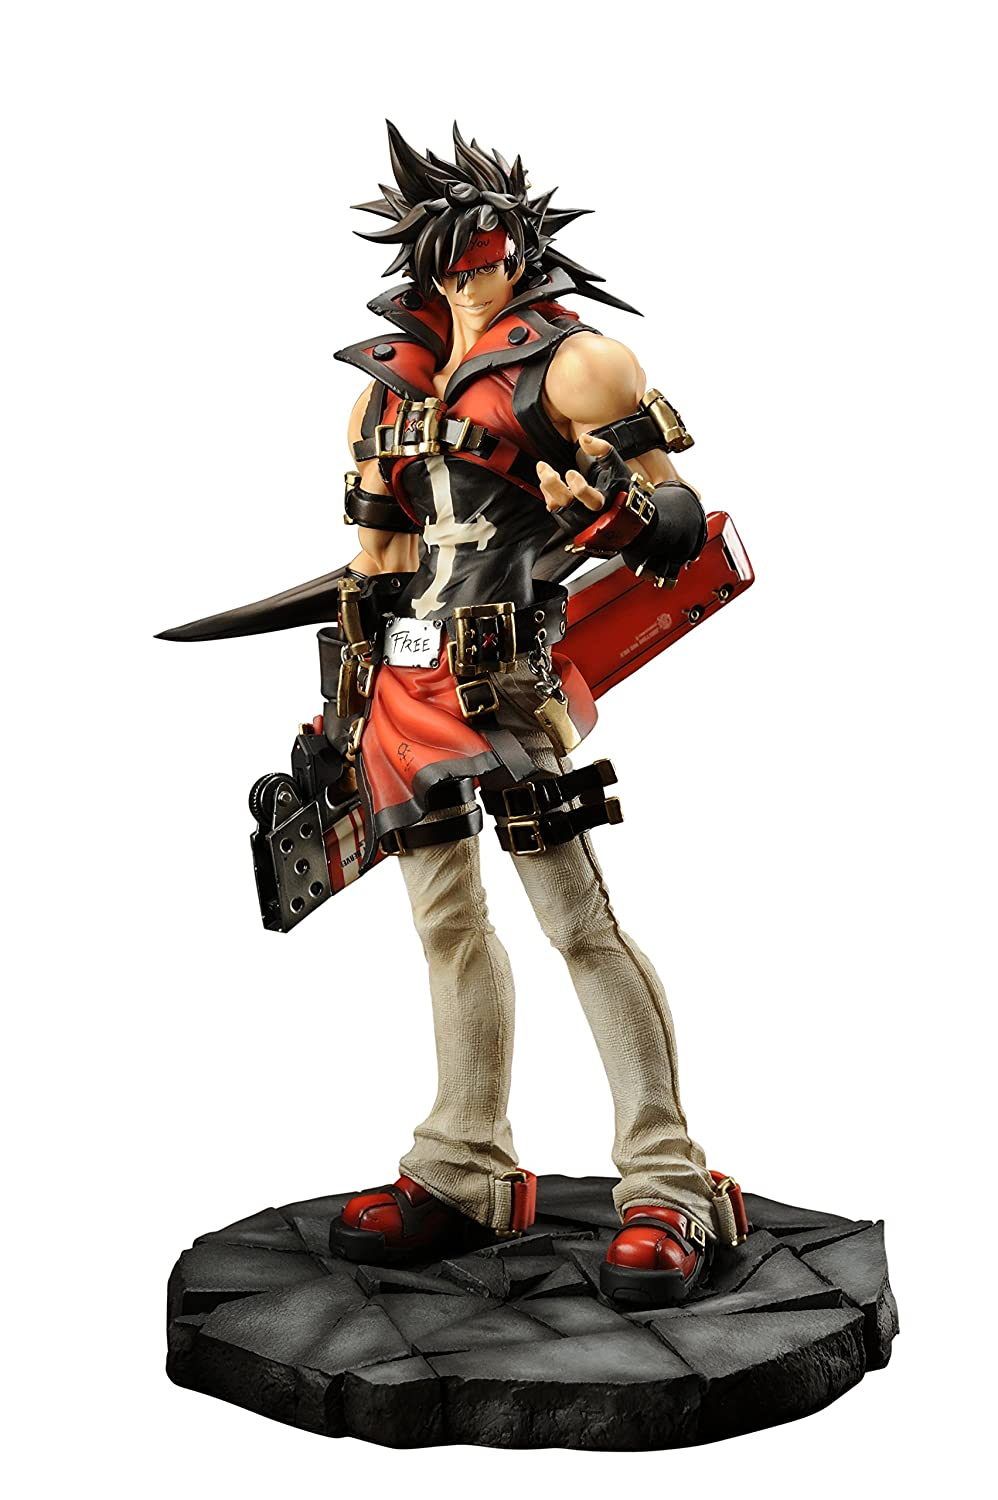 Embracejapan GUILTY GEAR Xrd -SIGN-: Sol Badguy PVC Figure (1:8 Scale)